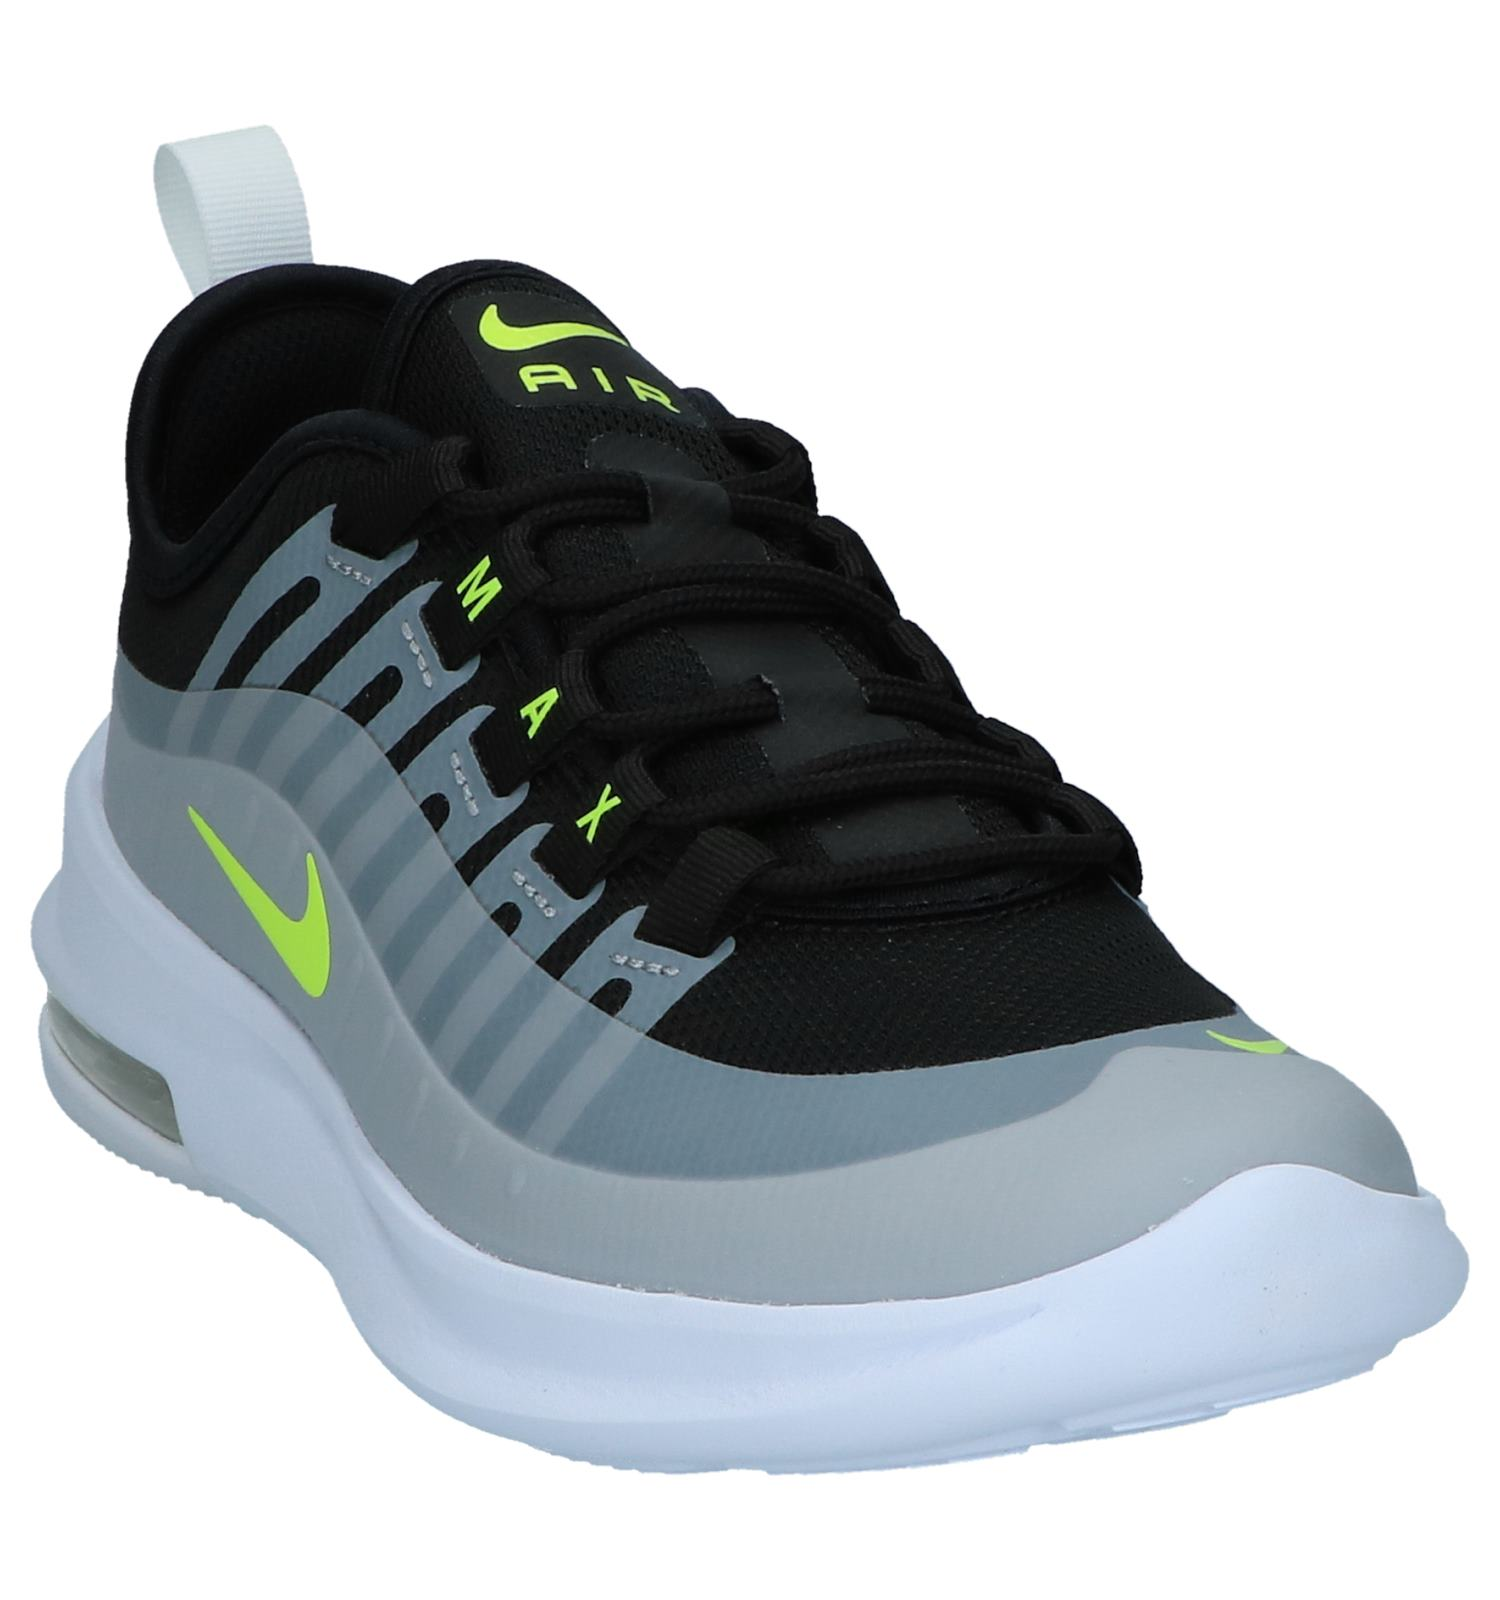 pretty nice 683b9 4350e Grijze Sneakers Nike Air Max Axis  TORFS.BE  Gratis verzend